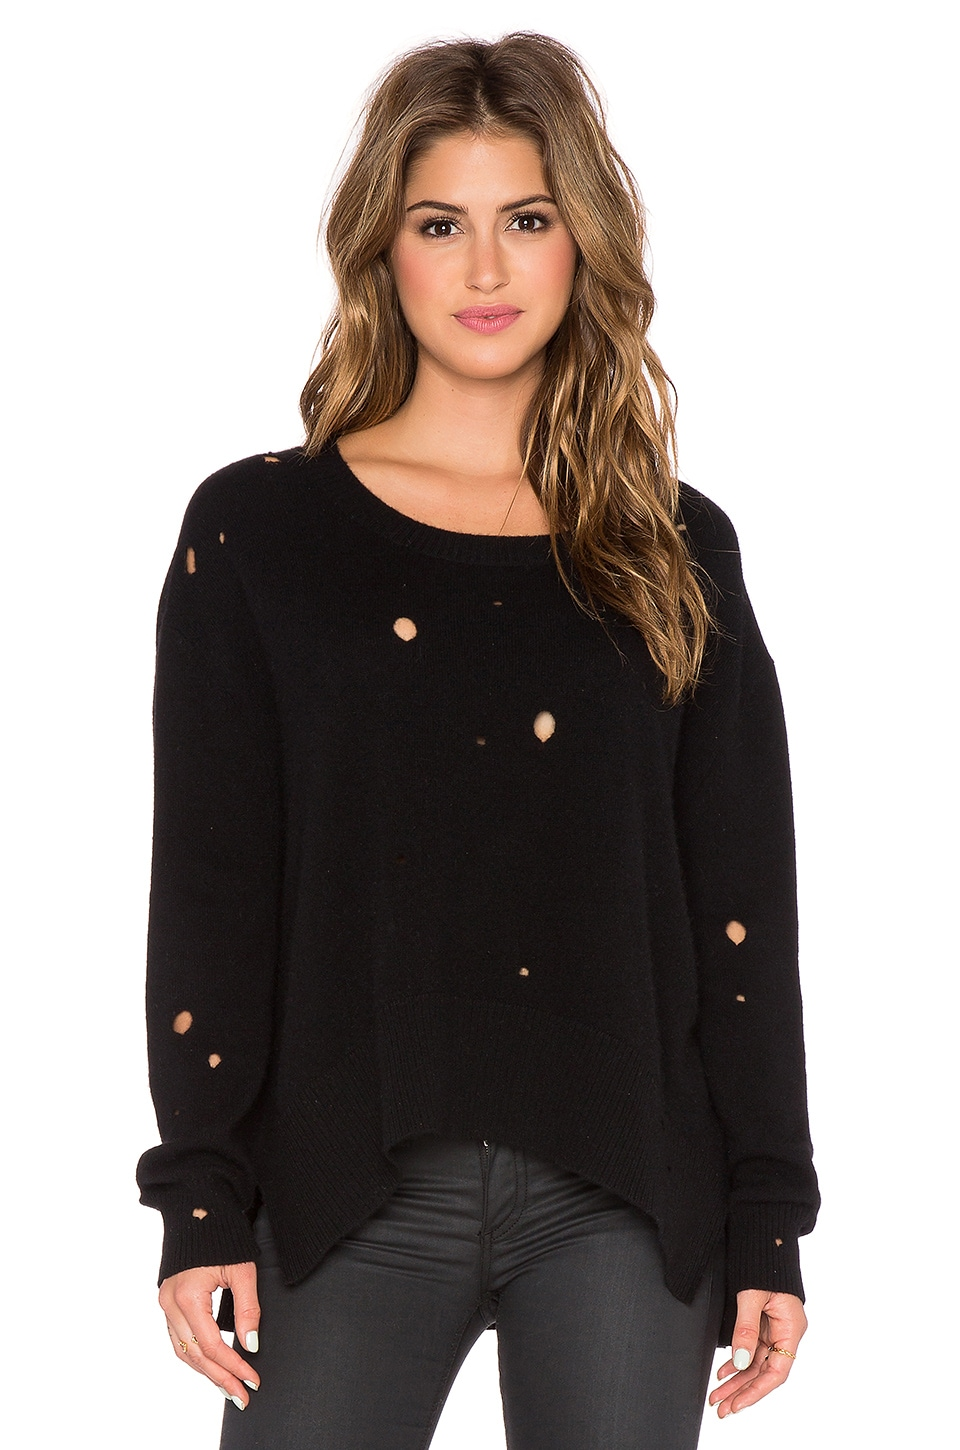 Enza Costa Cashmere Oversized Sweater in Black